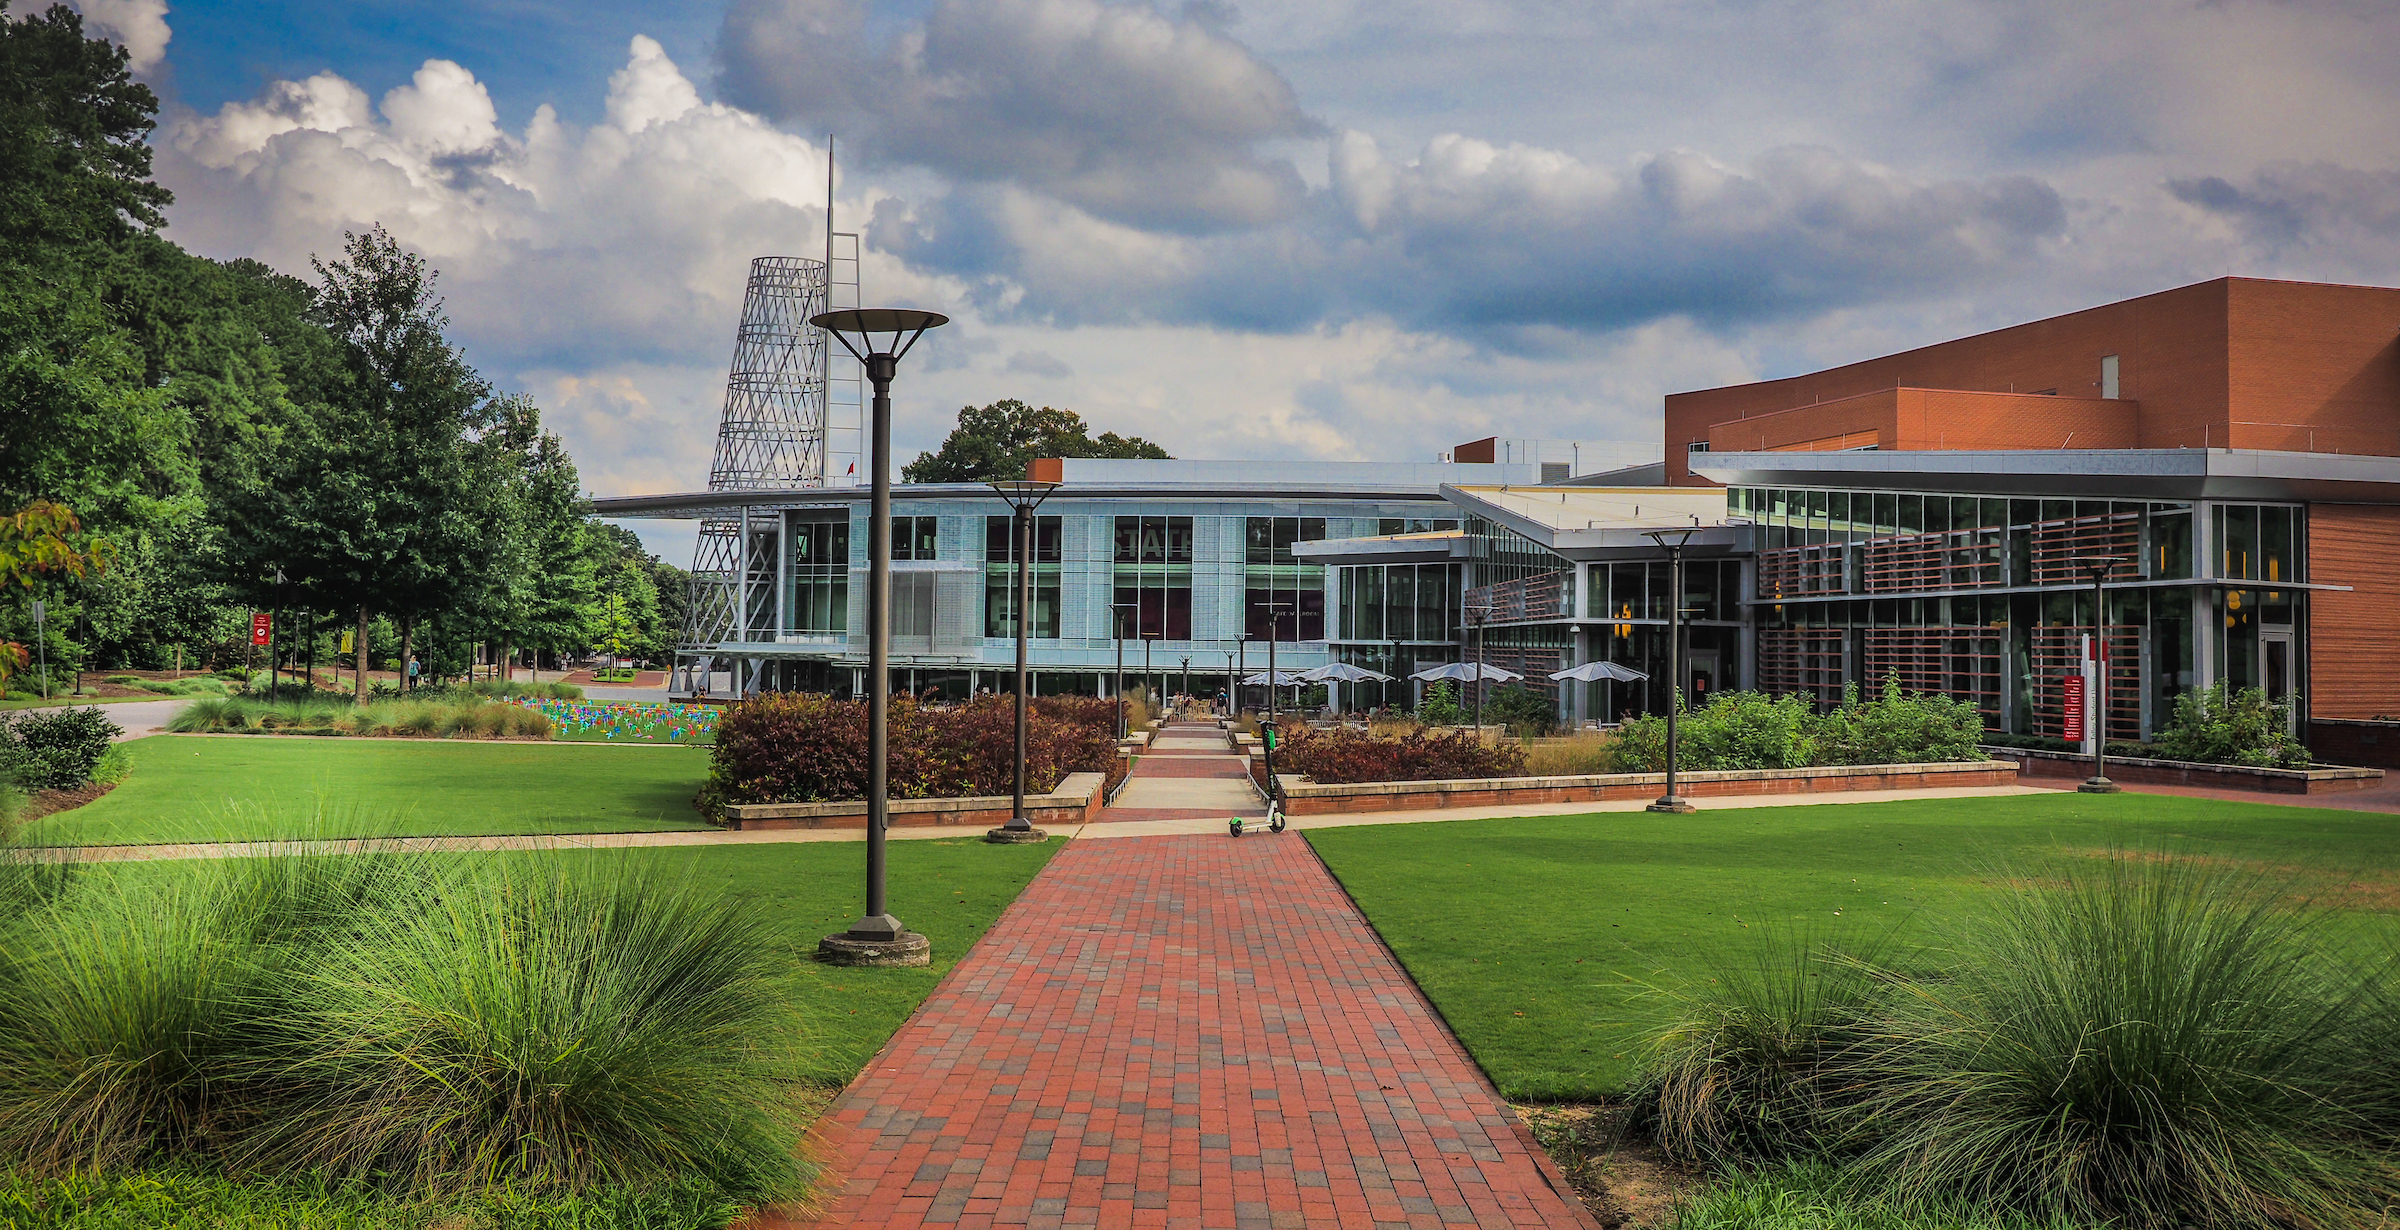 The Talley Student Union on a summer day